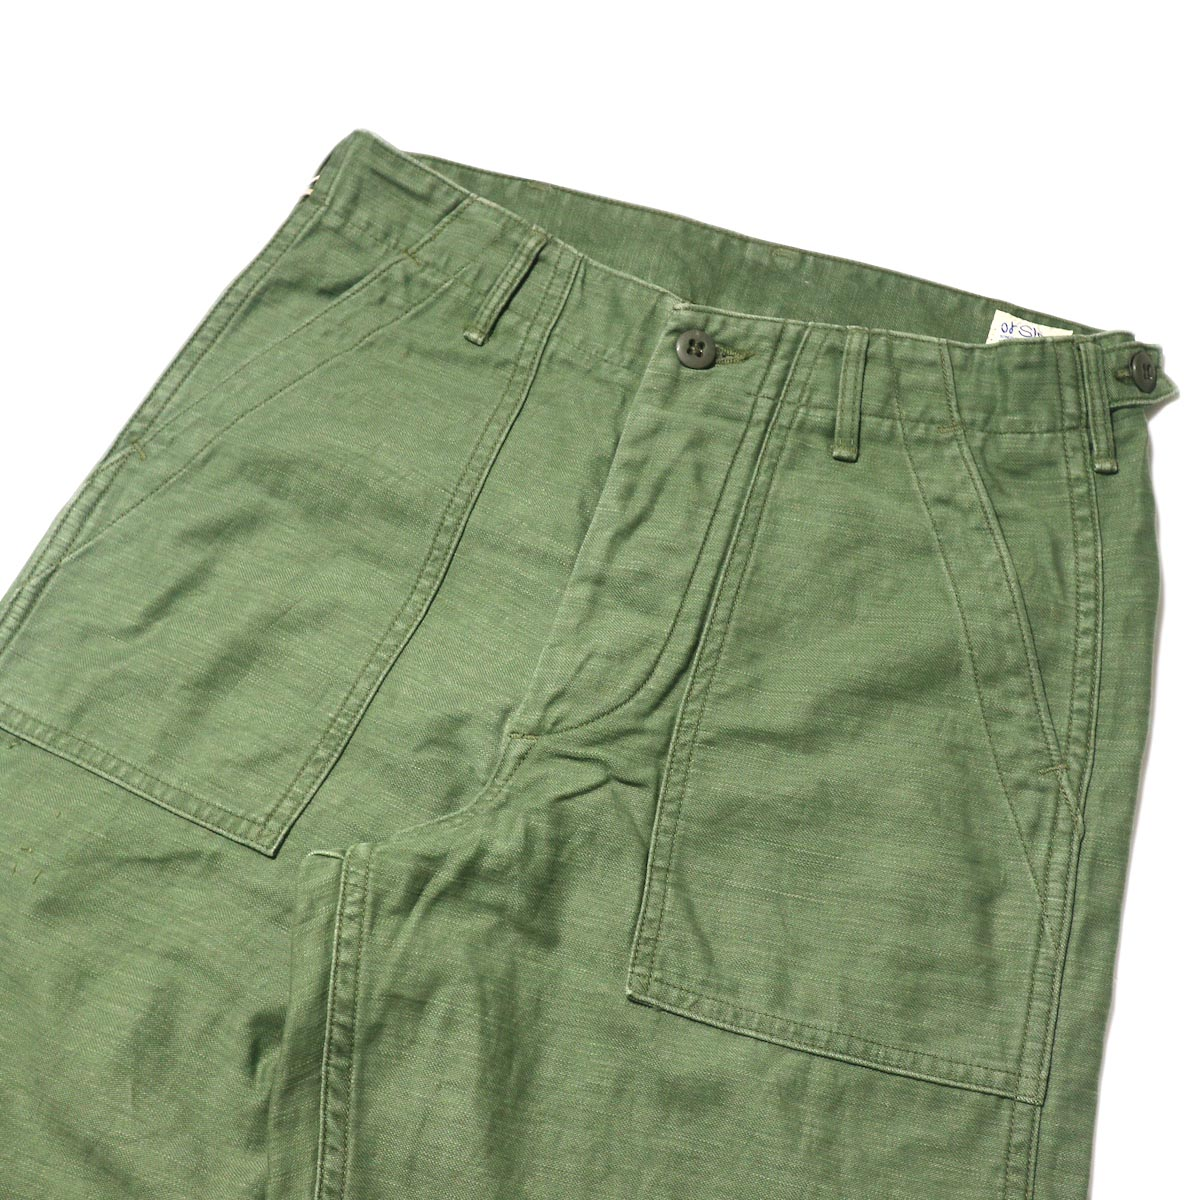 orSlow / US ARMY FATIGUE PANTS (Used Green)正面